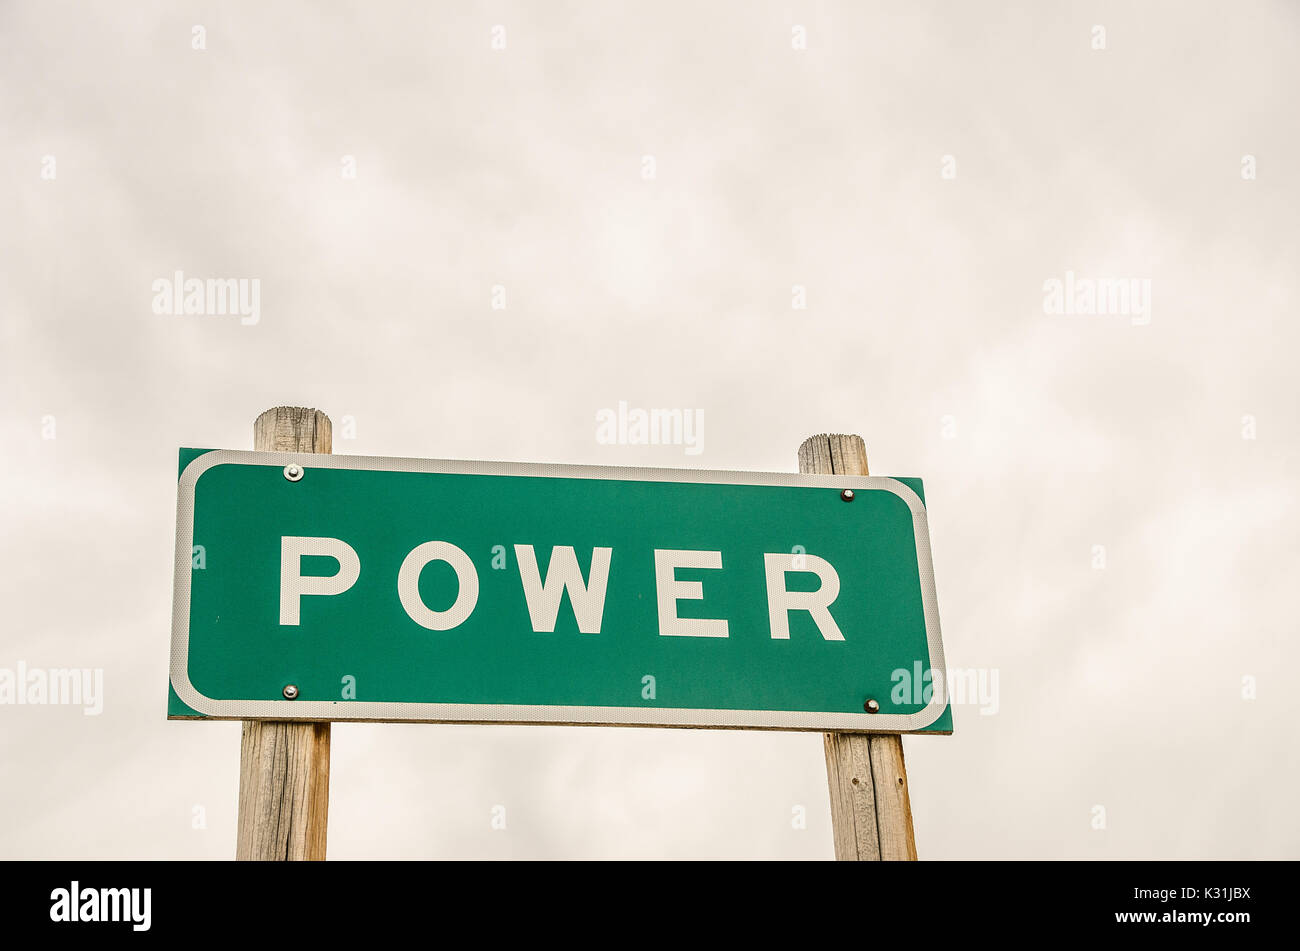 Green and white sign for power representing authority, control, influence, and strength with plenty of room for your message. - Stock Image